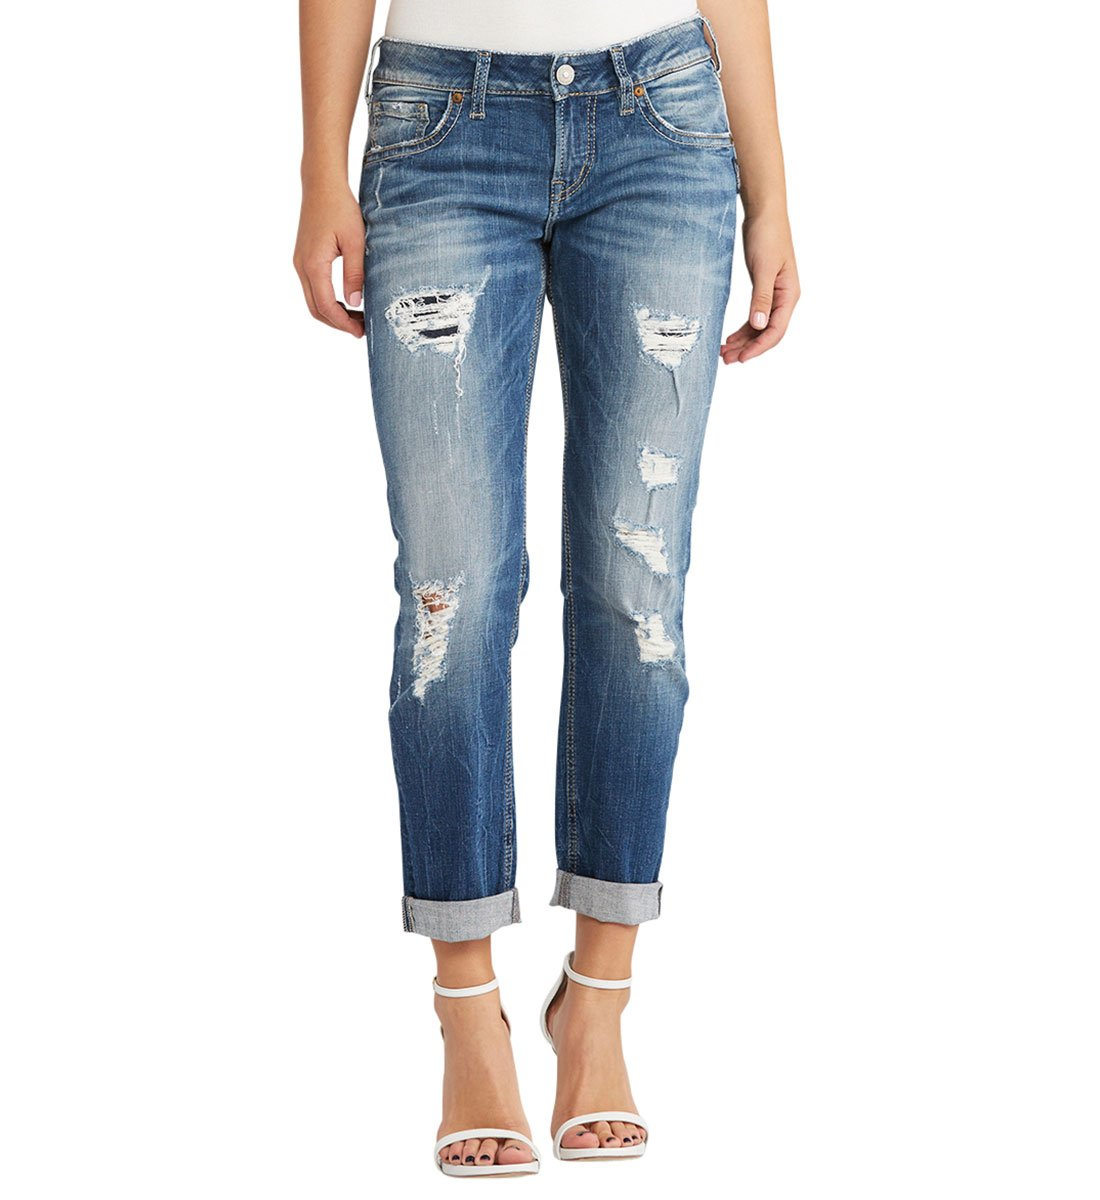 Silver Jeans Co. Women's Sam Mid Rise Boyfriend Jeans, Destroyed and Patched, 29x26